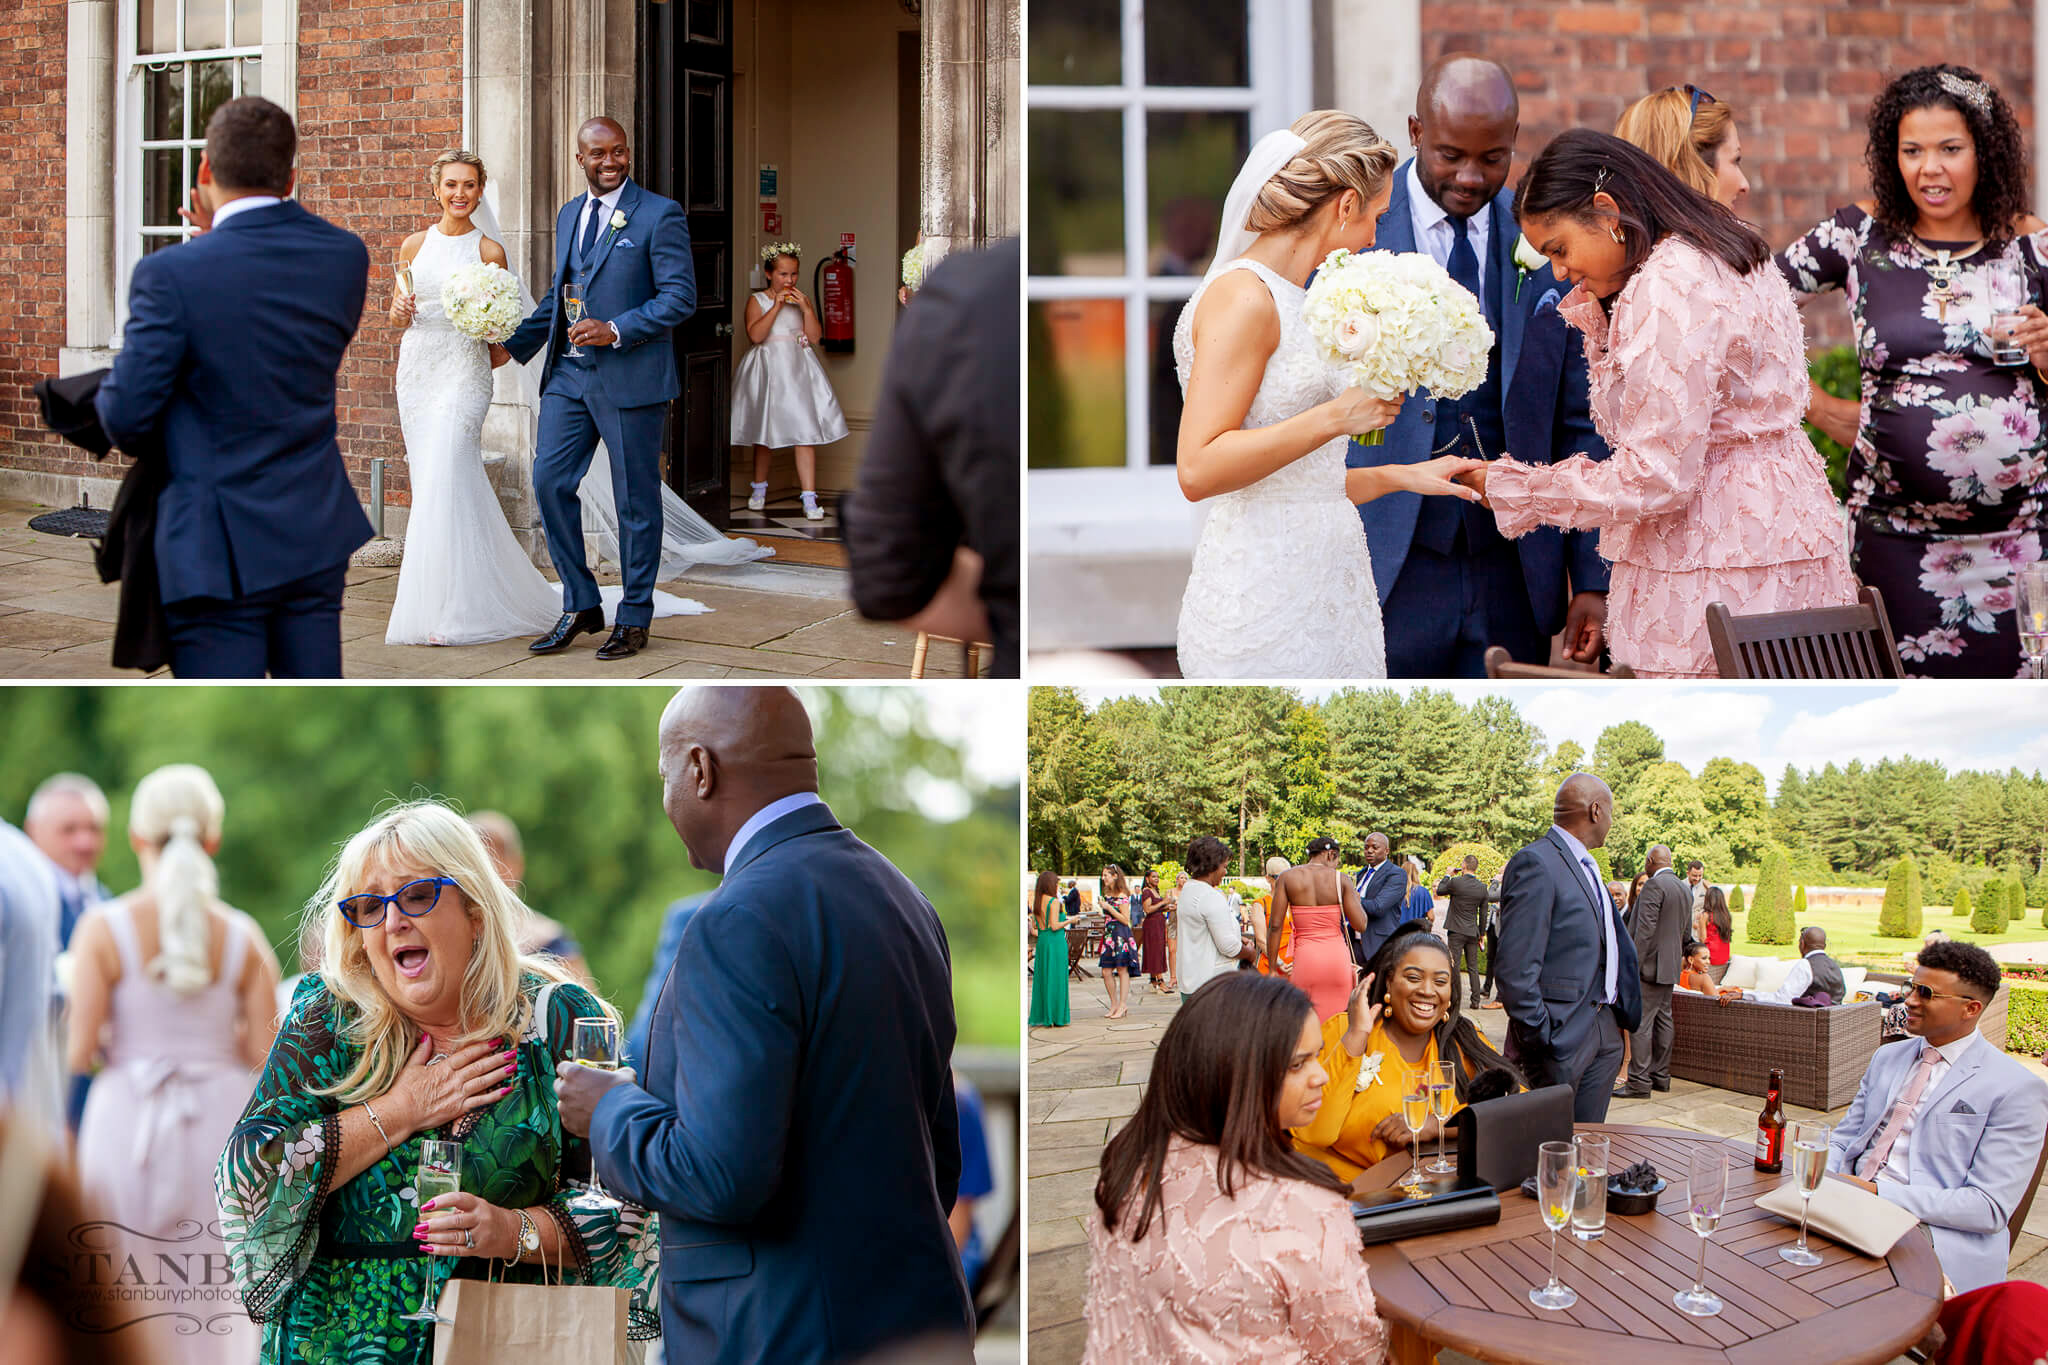 knowsley-hall-wedding-stanbury-photography-022